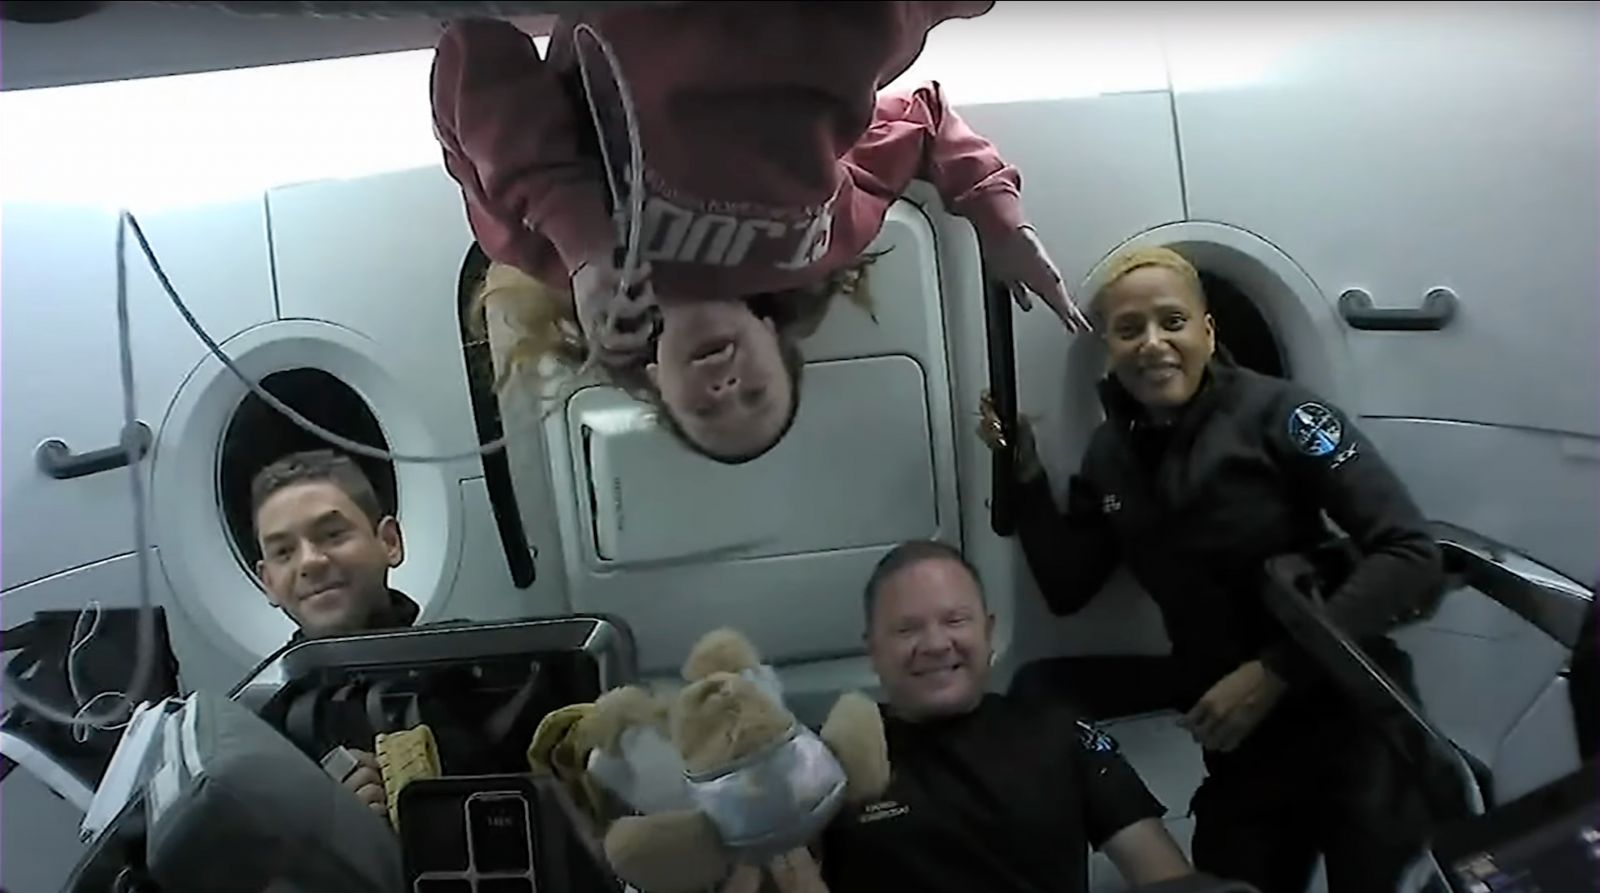 The Inspiration4 crew during an in-flight mission update broadcast. Credit: SpaceX